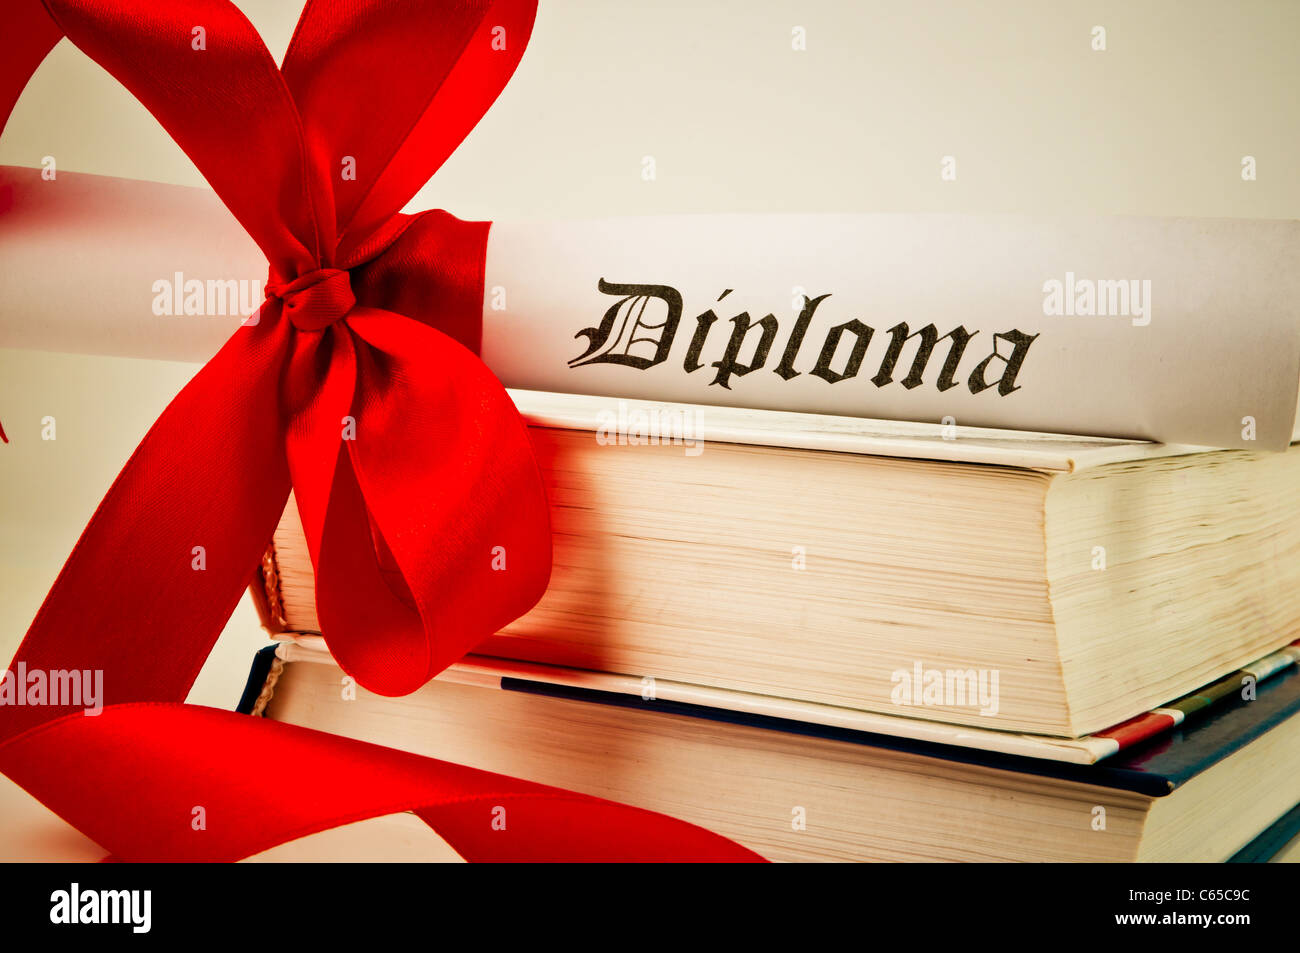 Diploma with red ribbon and books - Stock Image